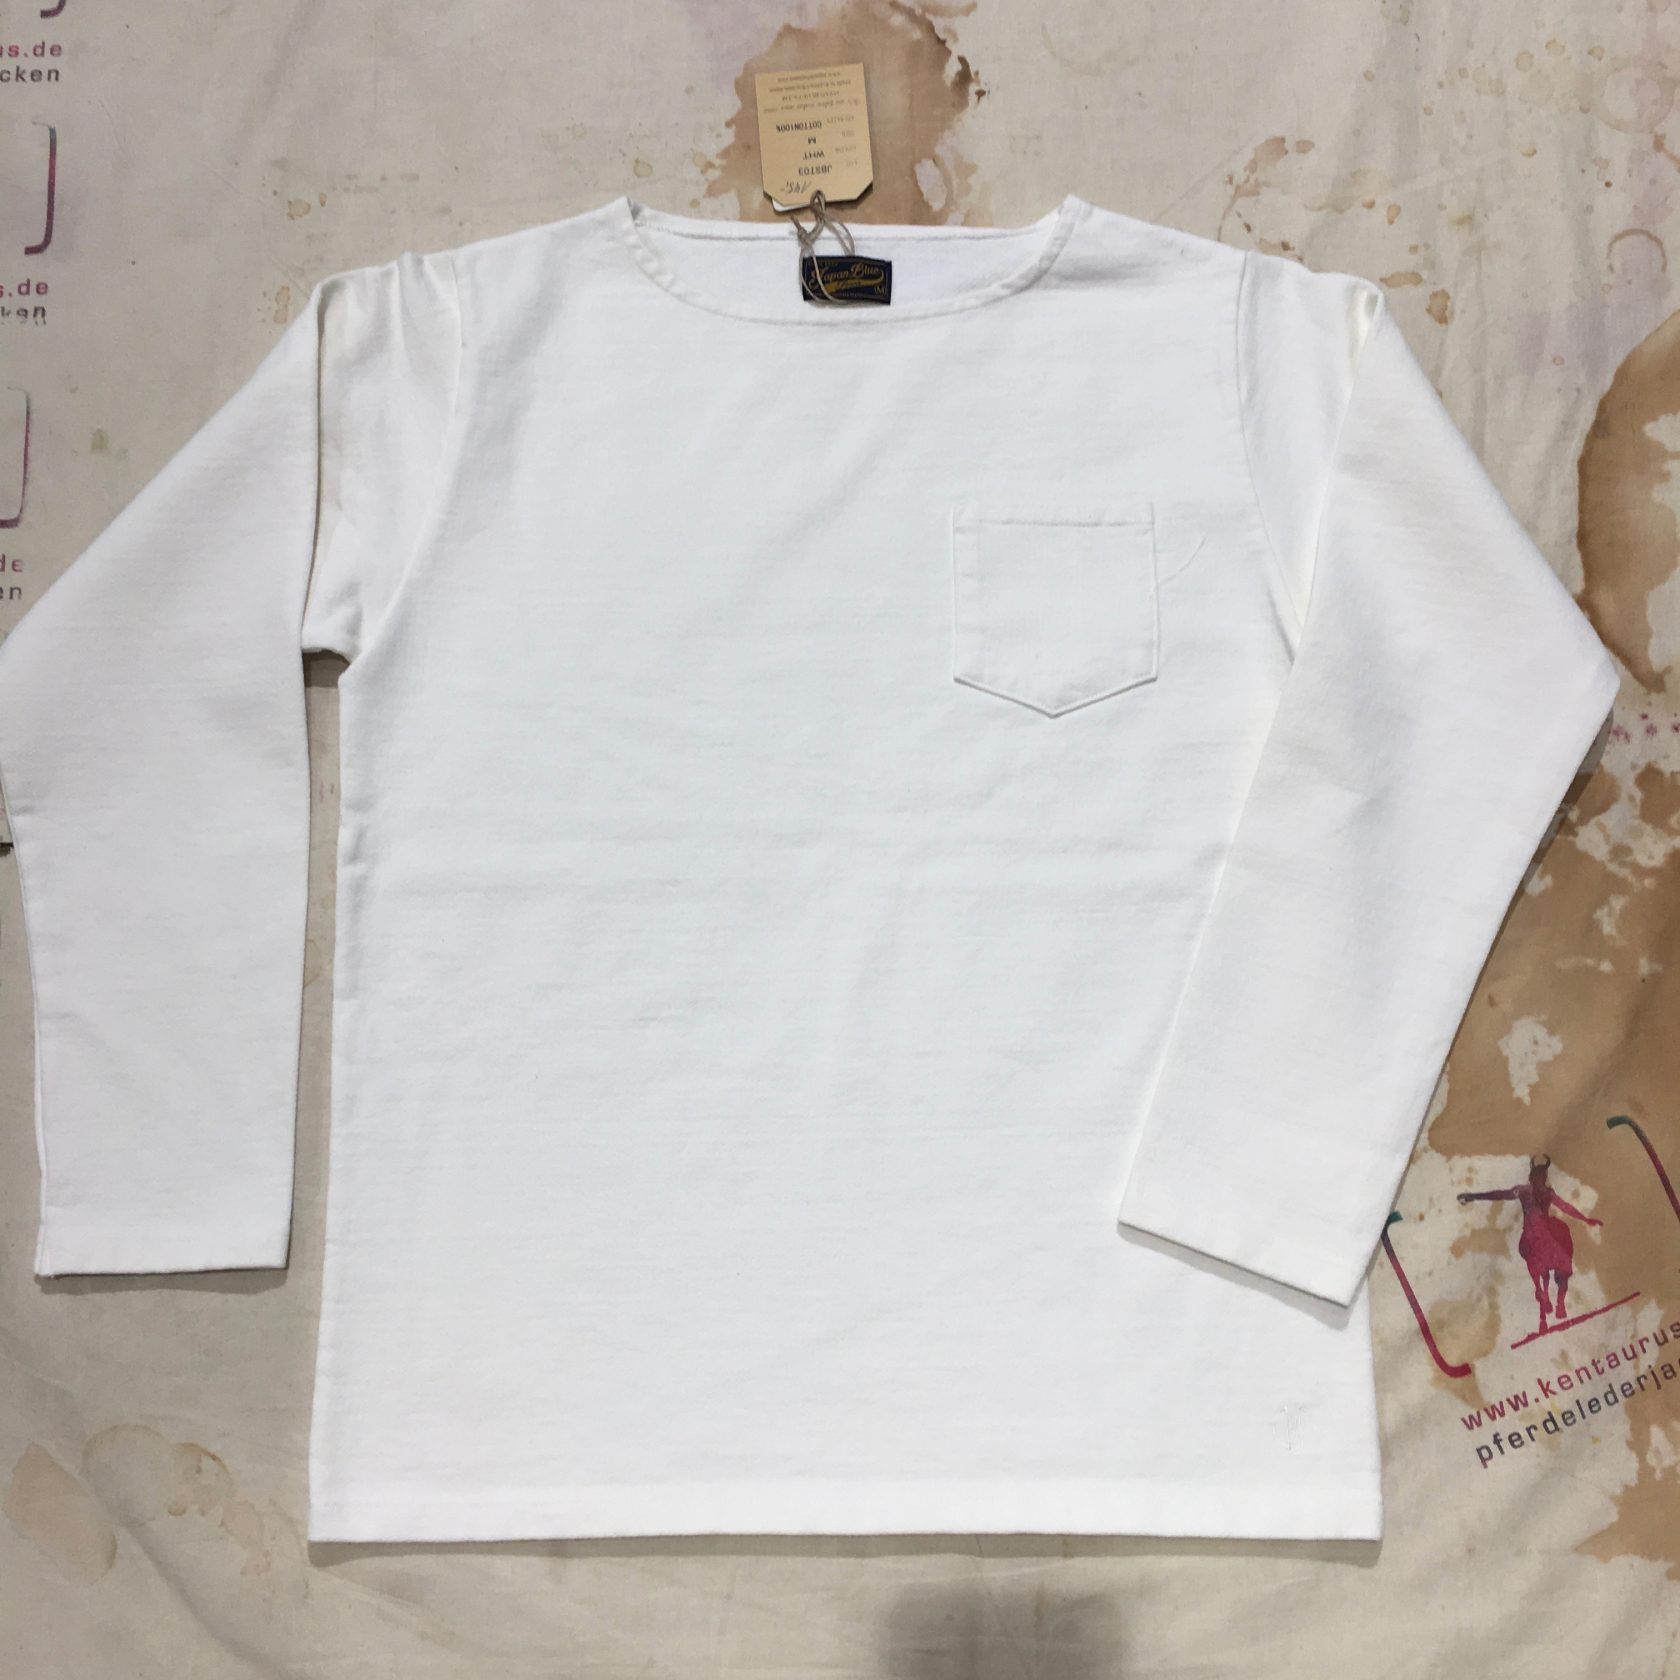 Japan Blue longsleeve white